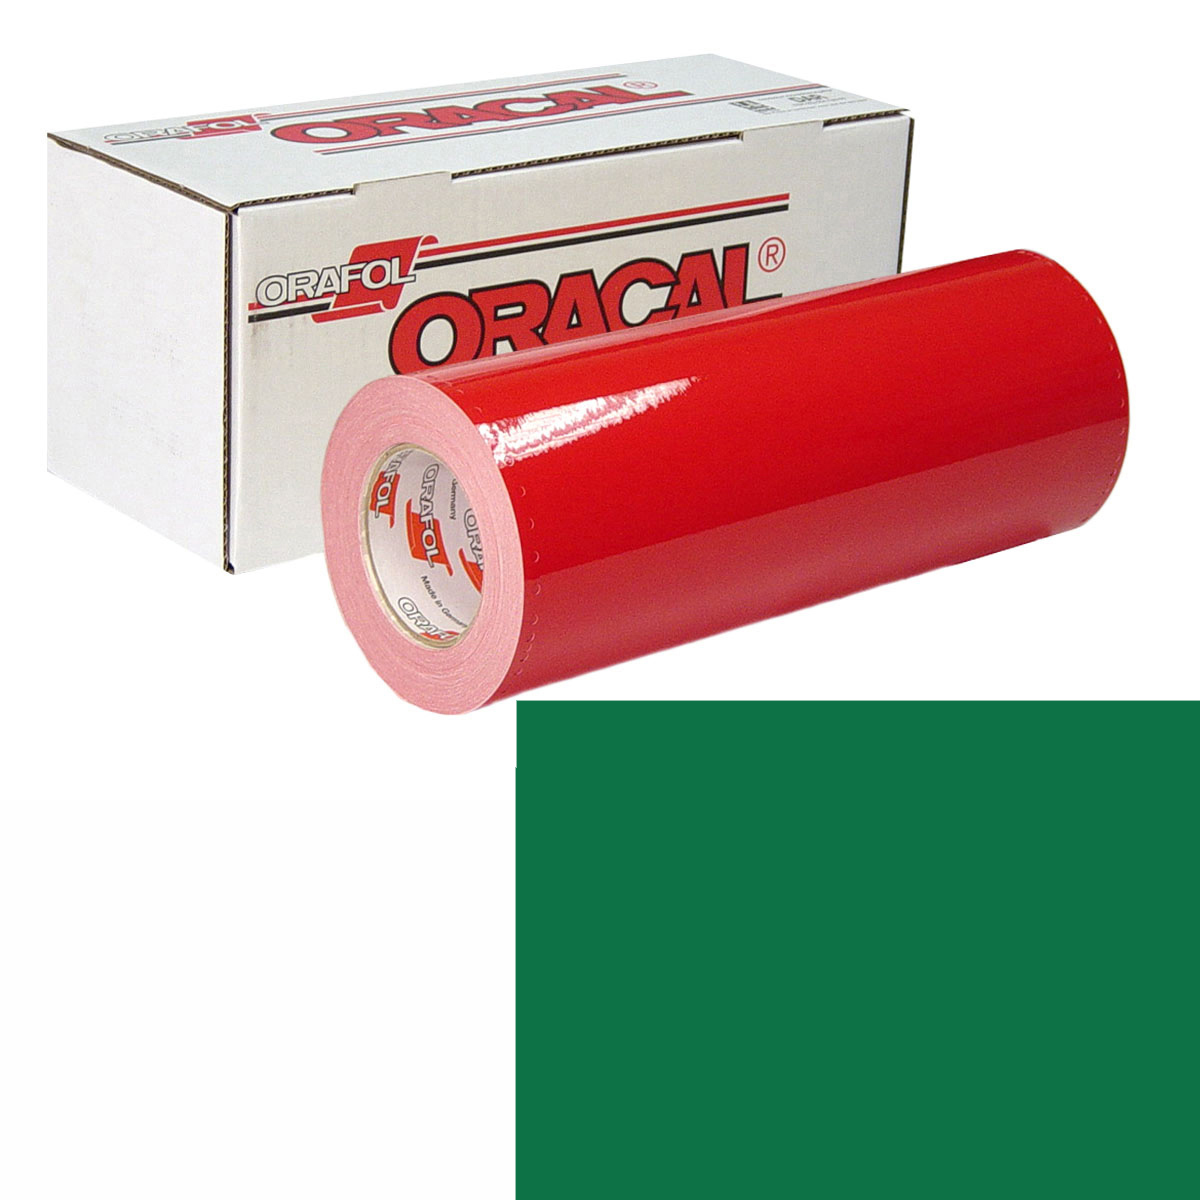 ORACAL 951 Unp 24In X 10Yd 604 Cactus Green